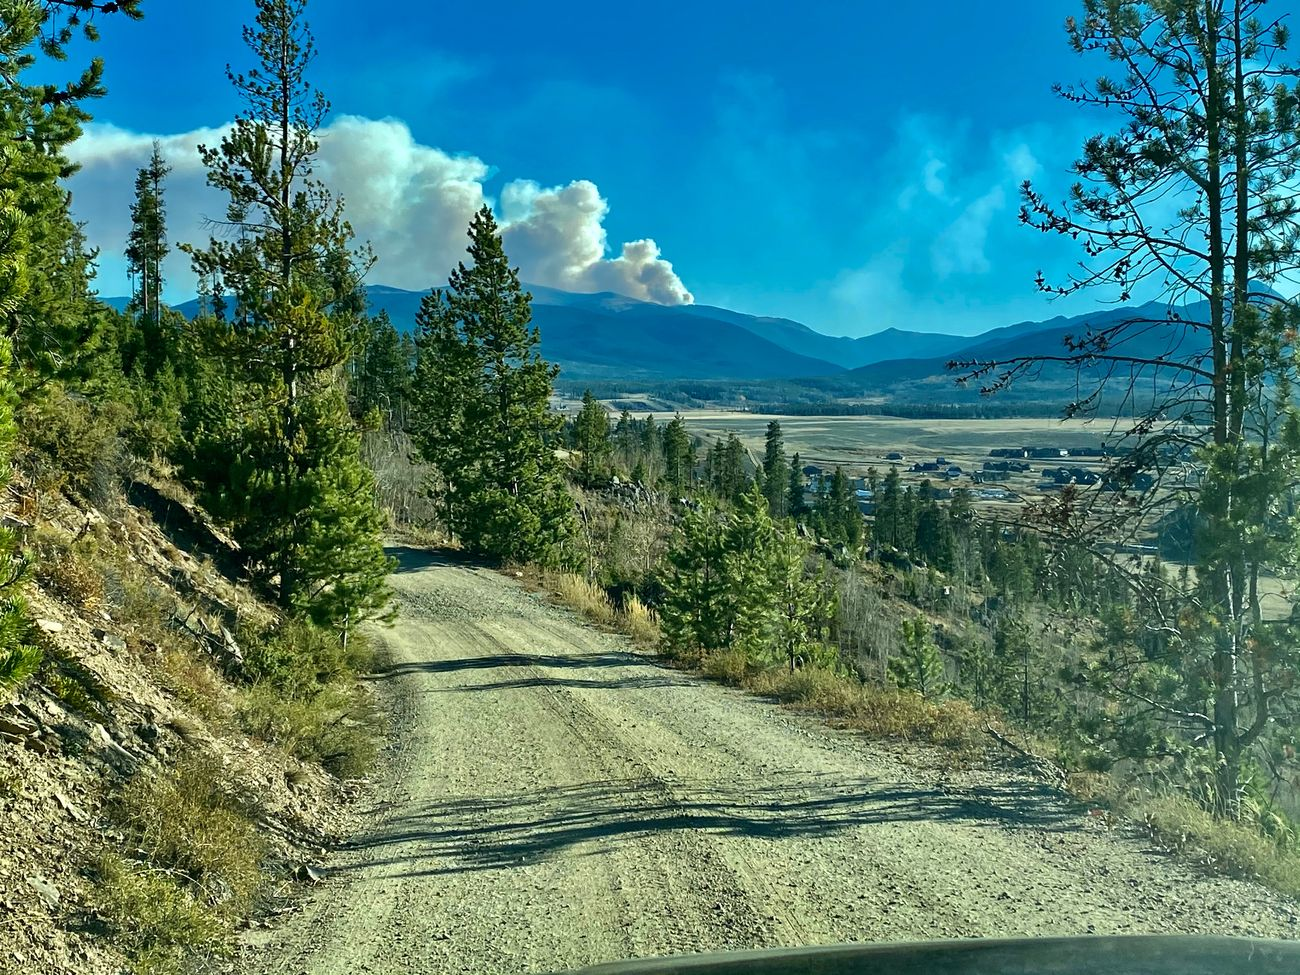 Cameron Peak Fire 2020